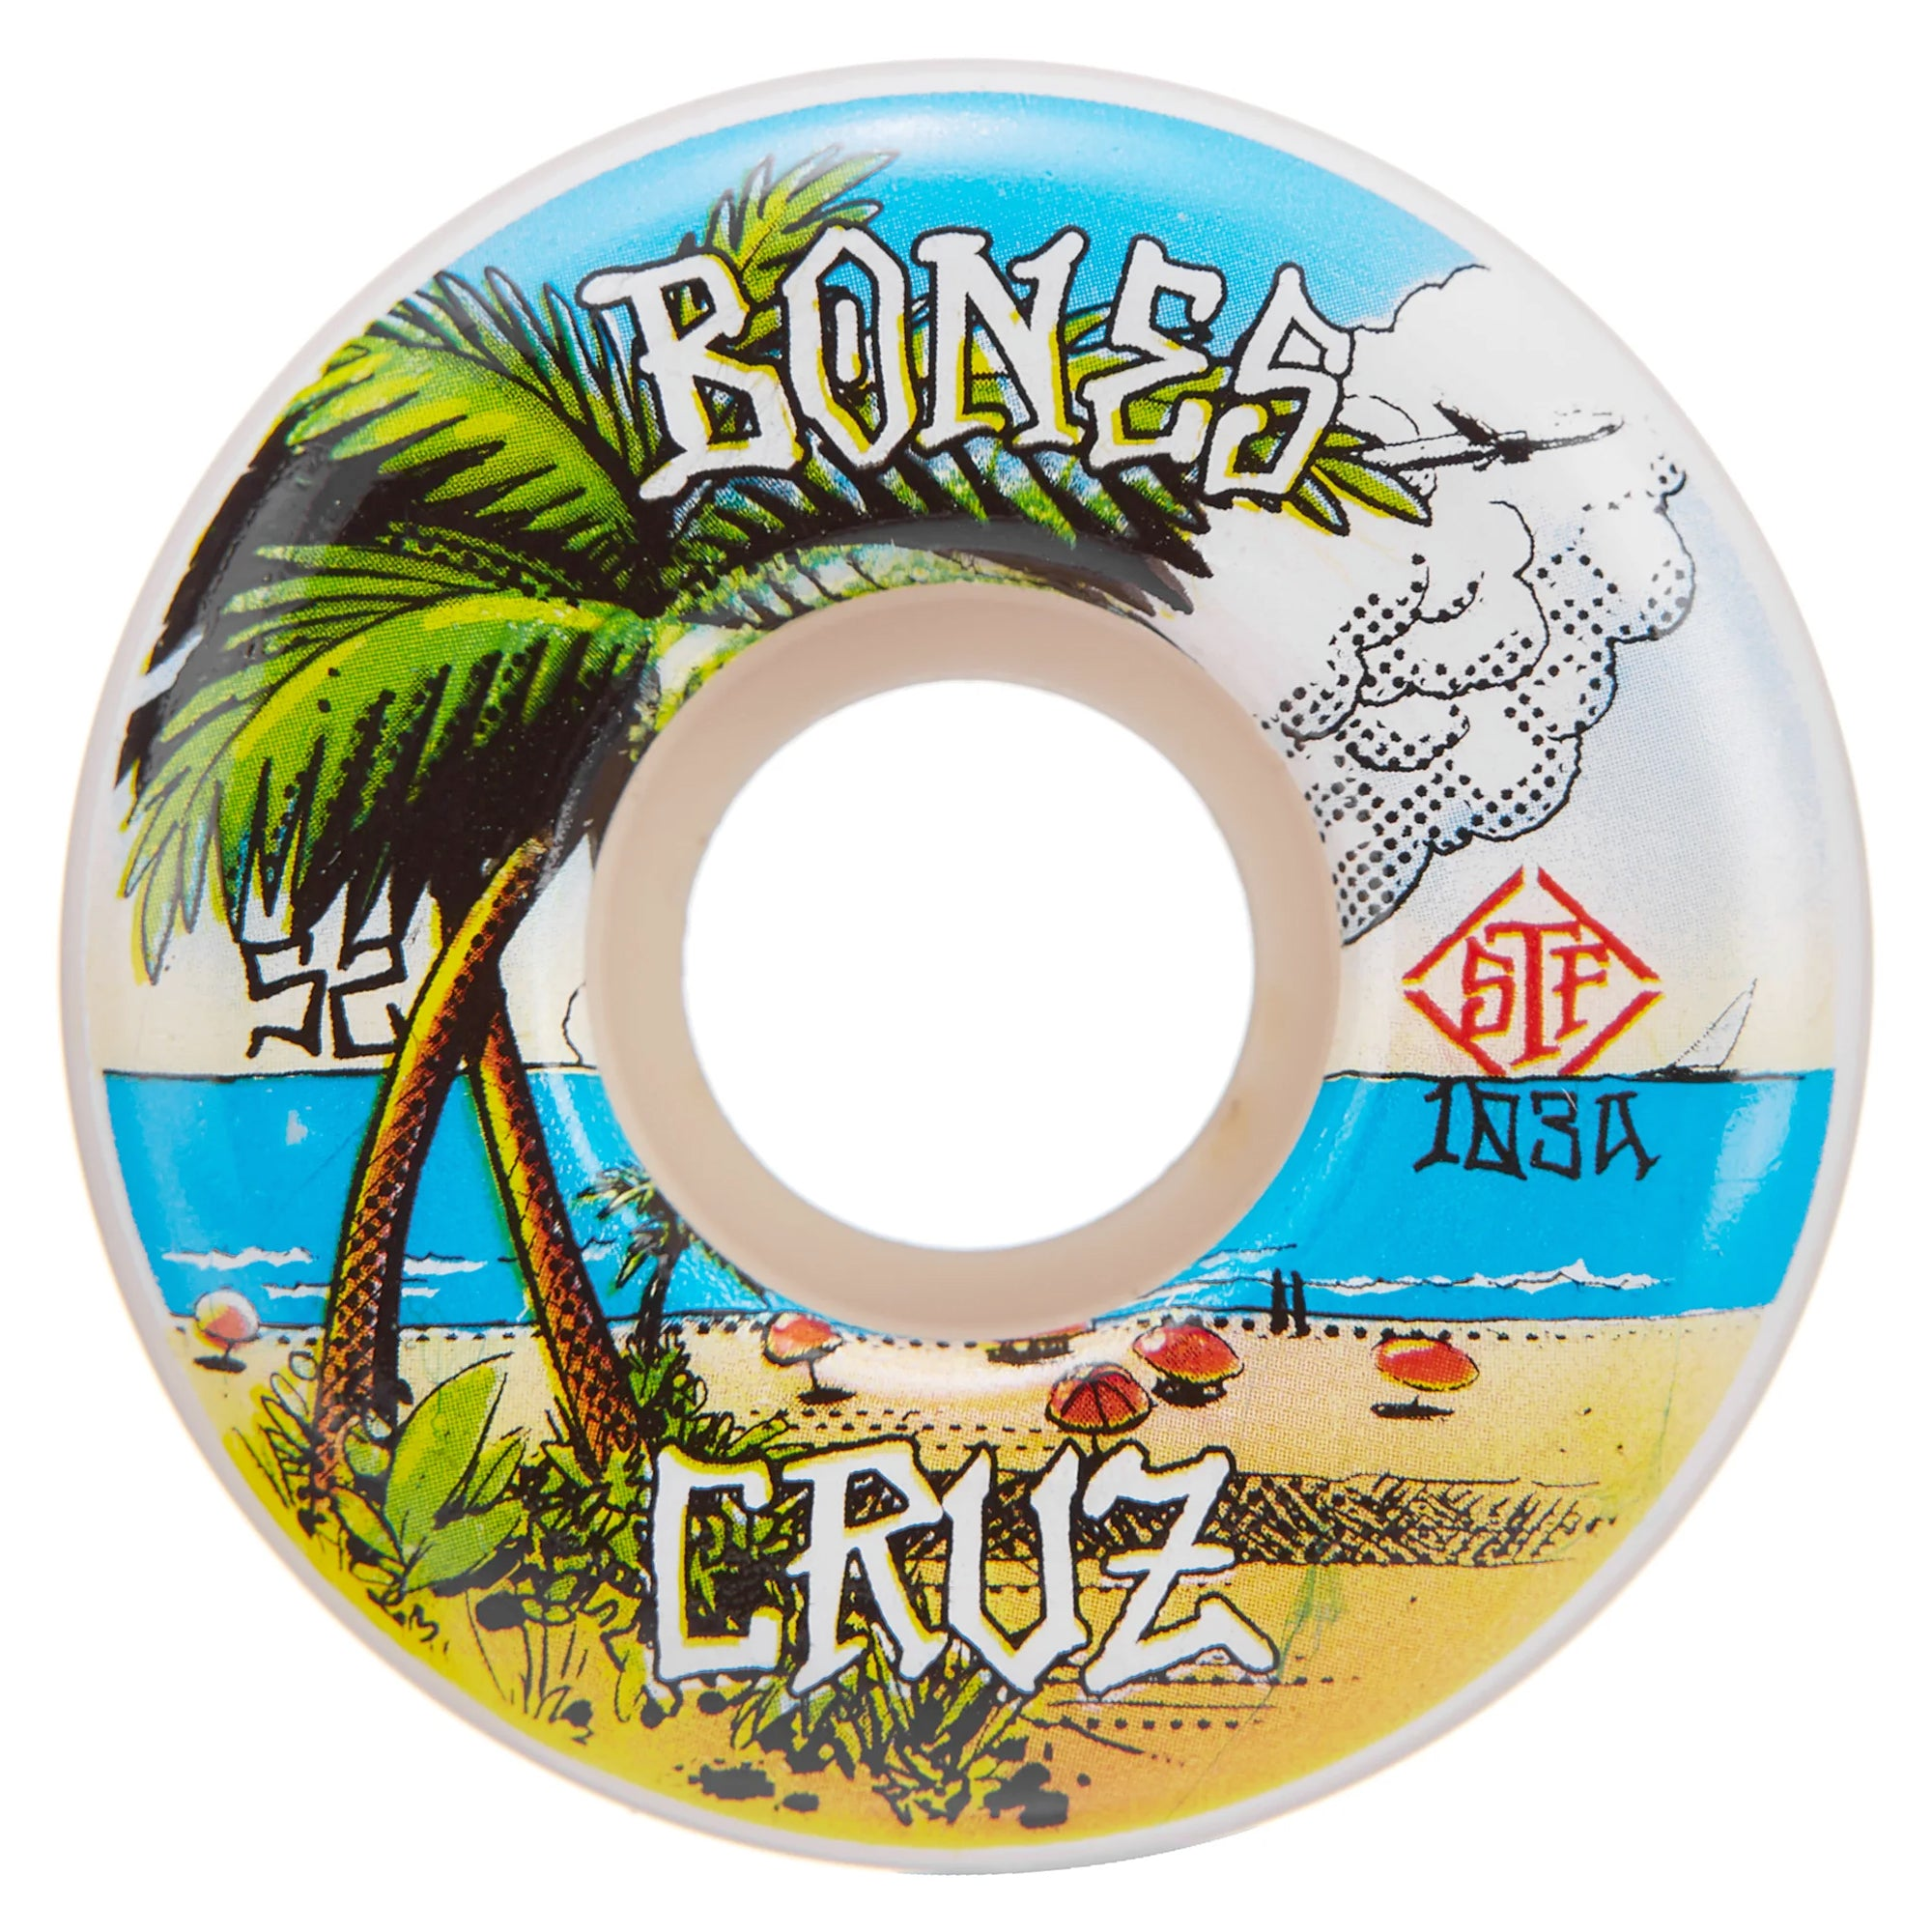 Bones Cruz Buena Vida STF V2 103a 52mm Wheels